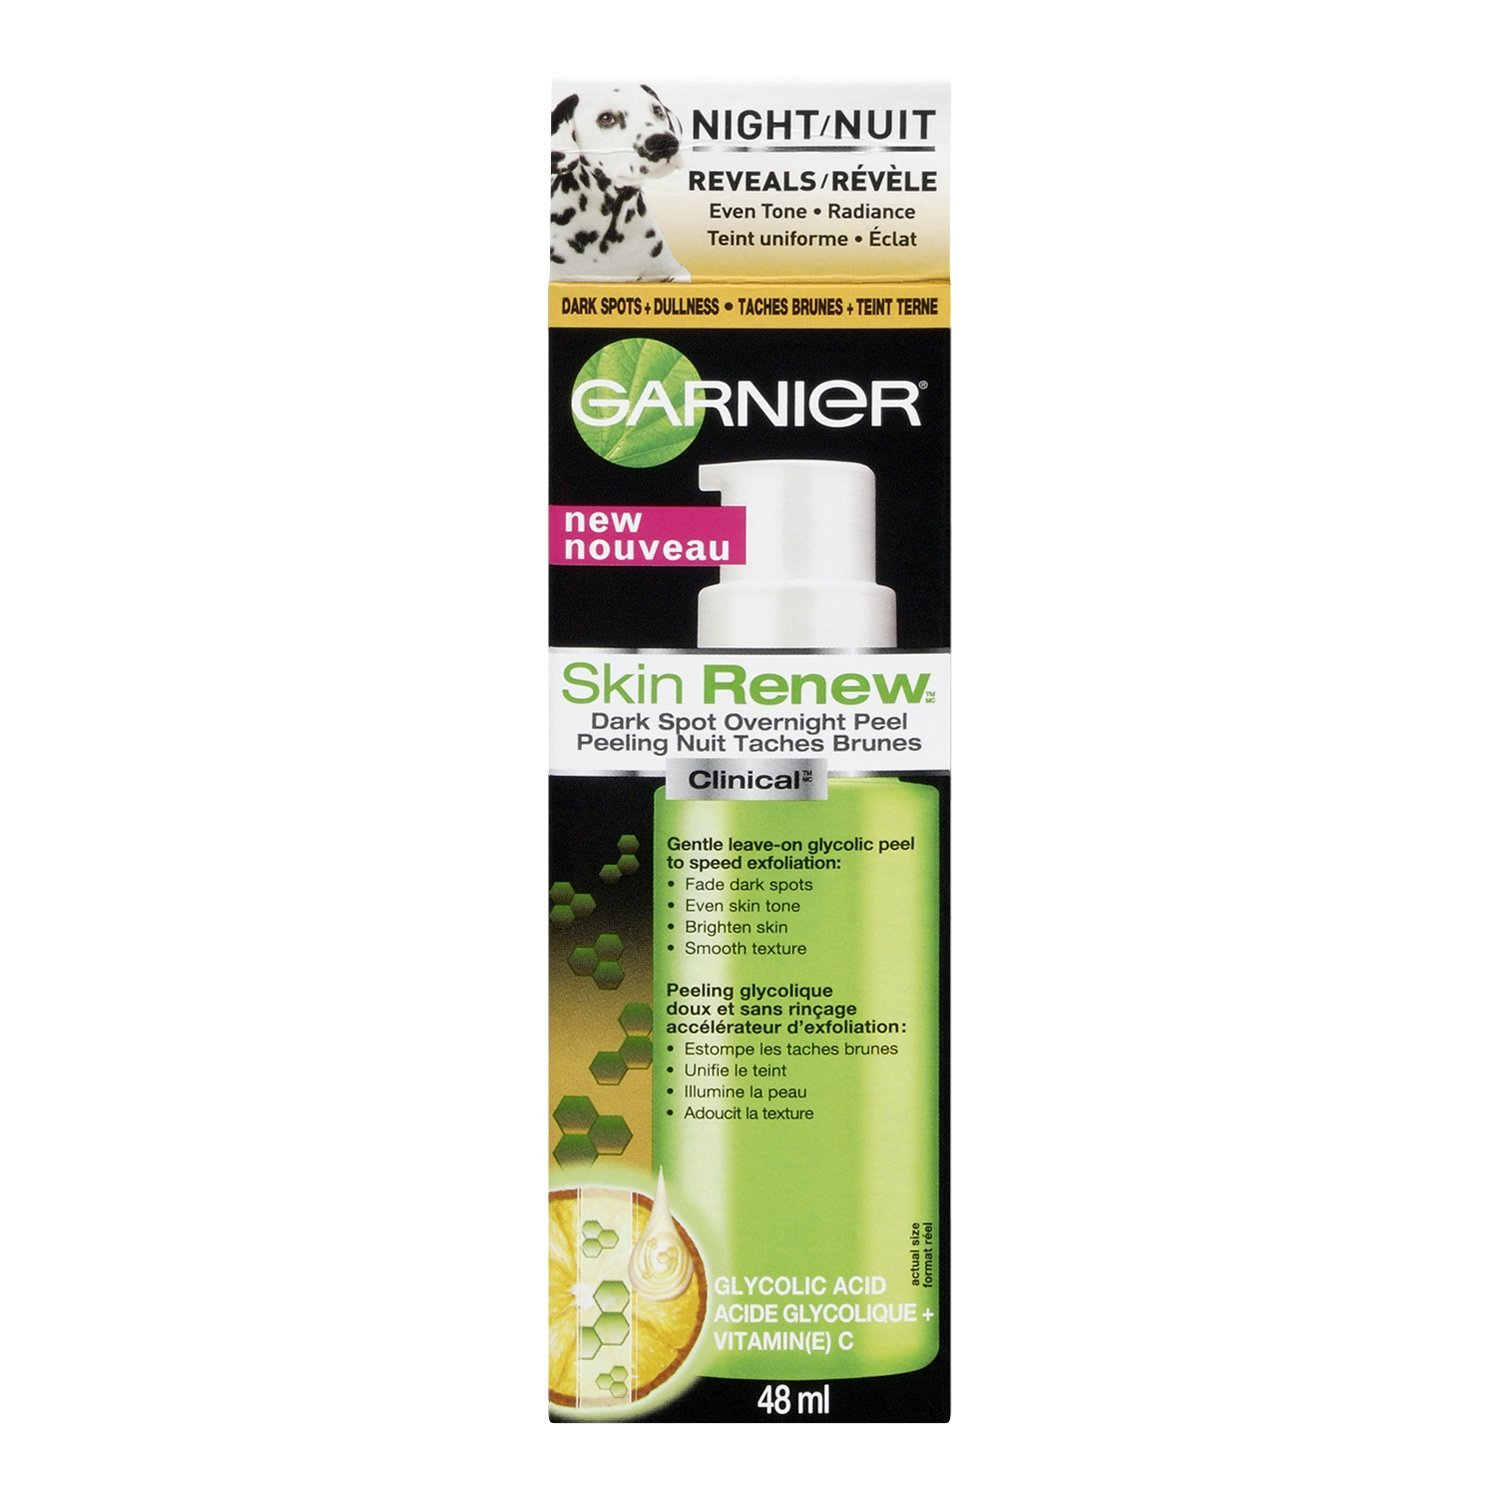 Garnier Skin Renew Clinical Dark Spot Overnight Peel, 1.6 Fluid Ounce